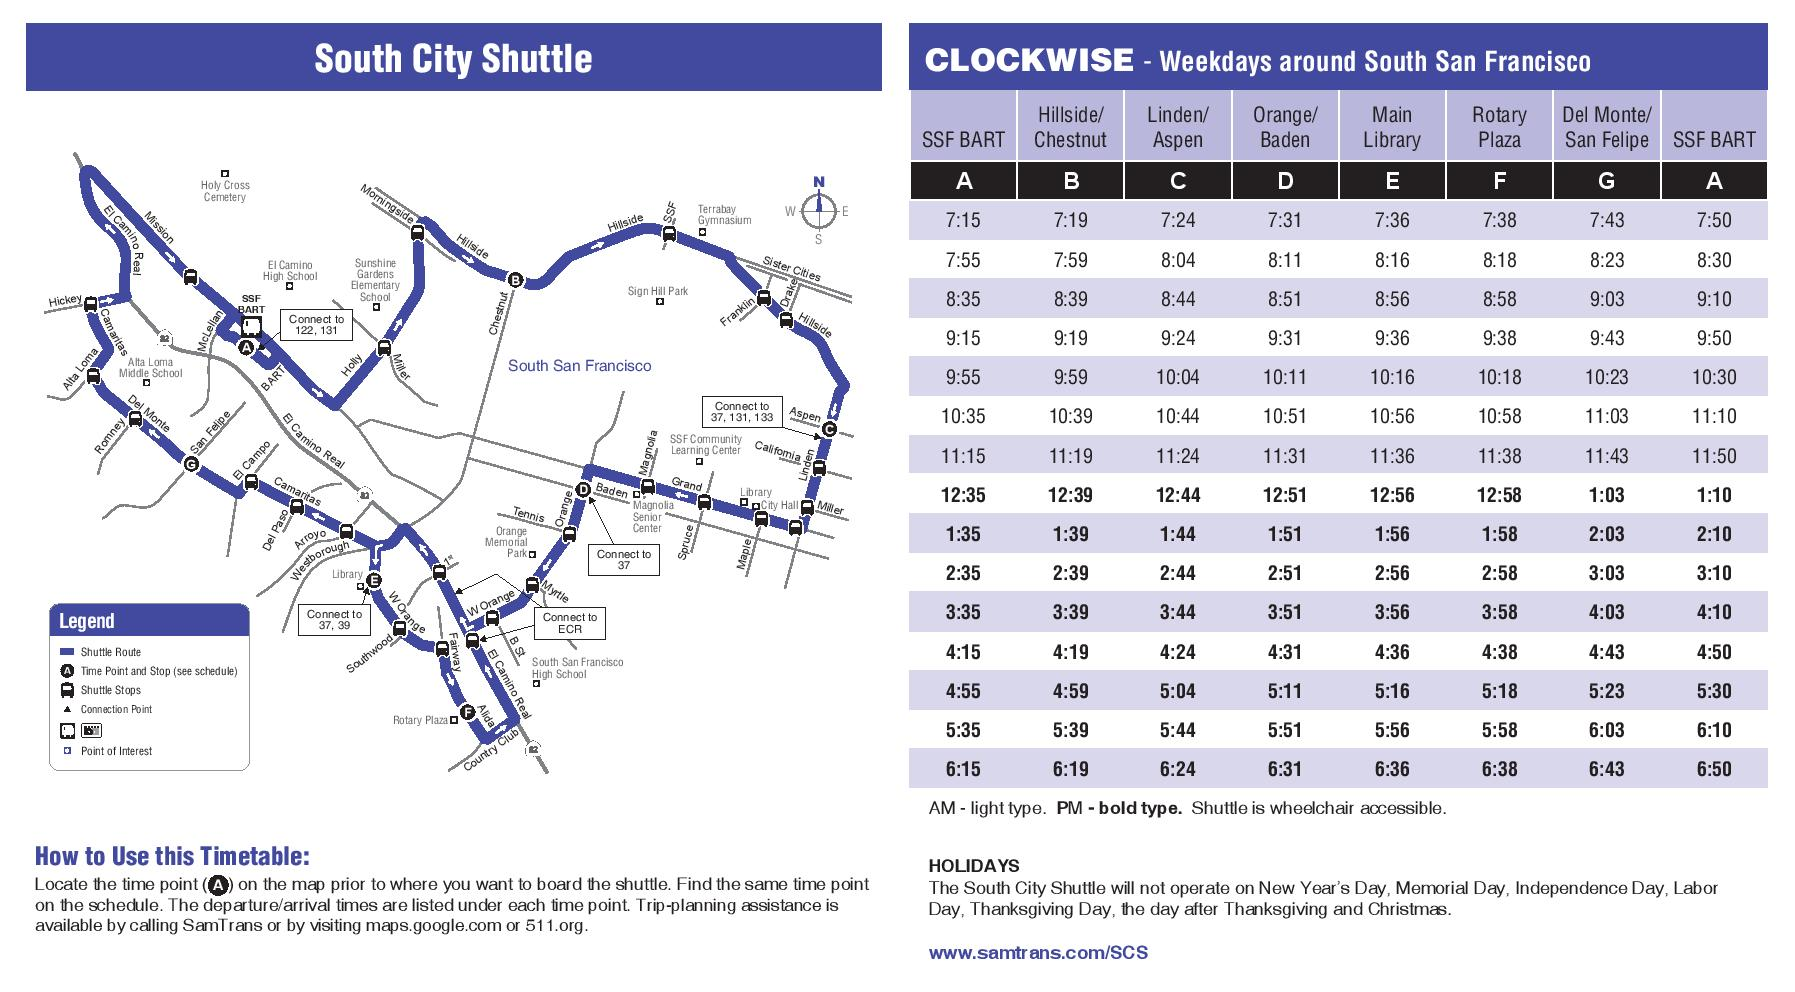 South City Shuttle To Start November 4th – UPDATE WITH ... on key system route map, caltrain route map, greyhound route map, septa route map, bus route map, vta route map, valley metro route map, dart route map, metro transit route map, omnitrans route map, thebus route map, amtrak route map, foothill transit route map, golden gate transit route map, ac transit route map, anaheim resort transit route map, san francisco route map, mtc route map, glendale beeline route map, smart route map,